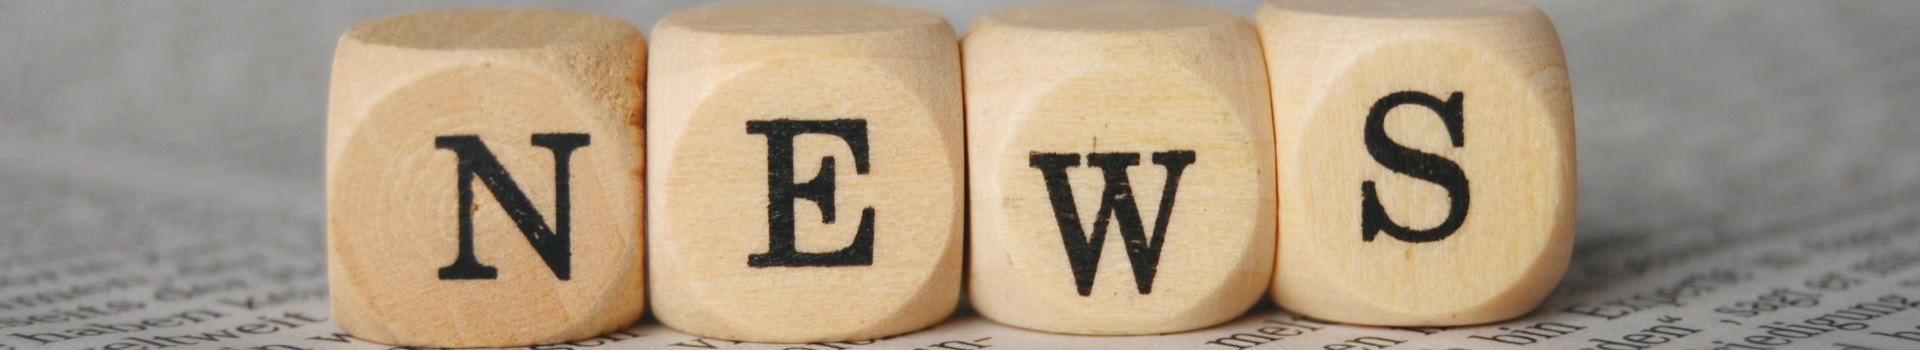 News written with lettered dice